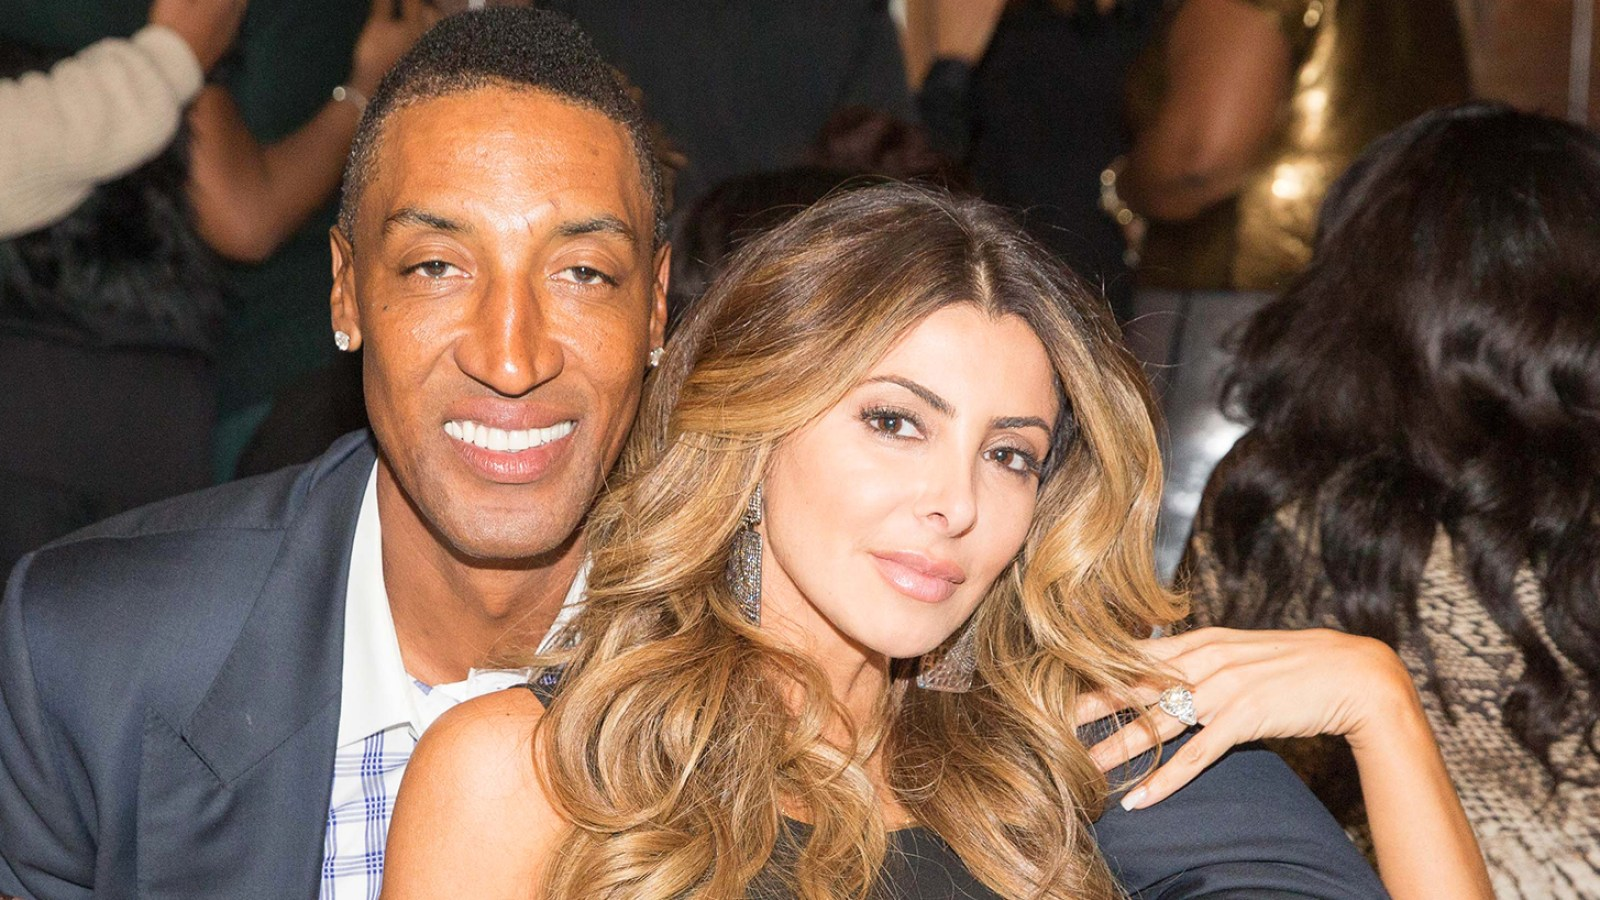 c48a9309491 Larsa Pippen Files for Divorce From Scottie Pippen